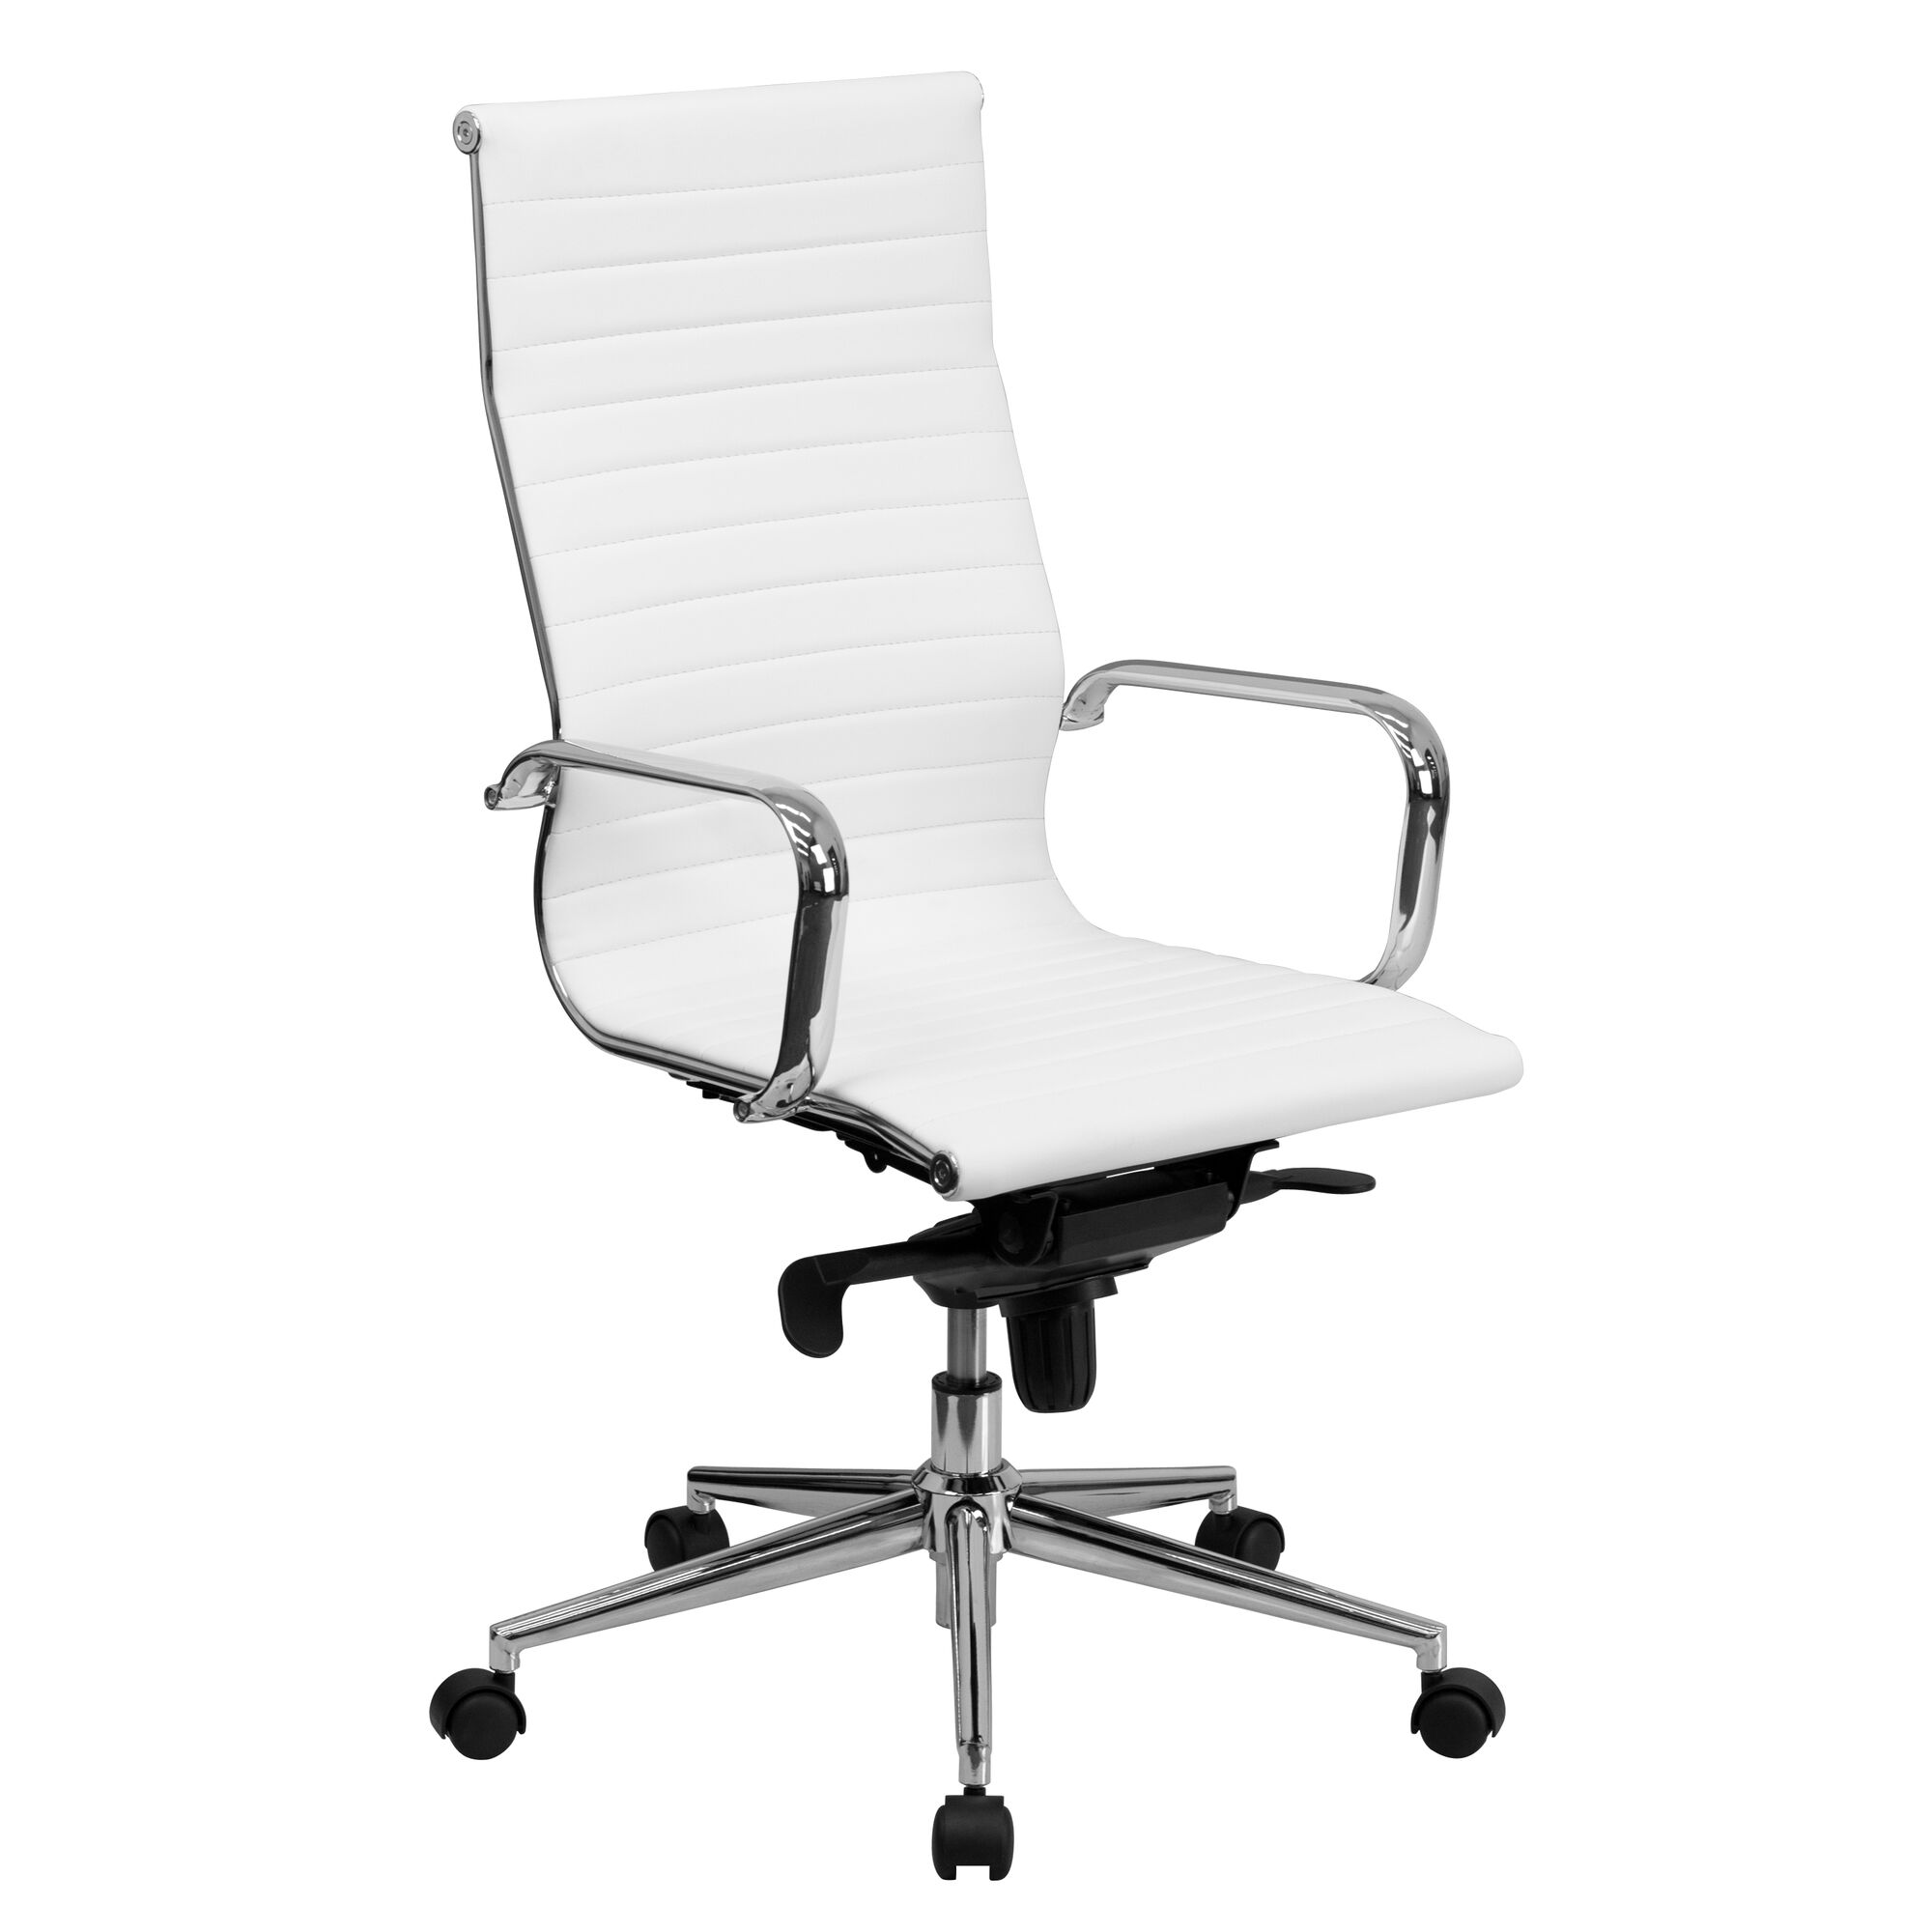 Images our high back white ribbed leather executive swivel office chair